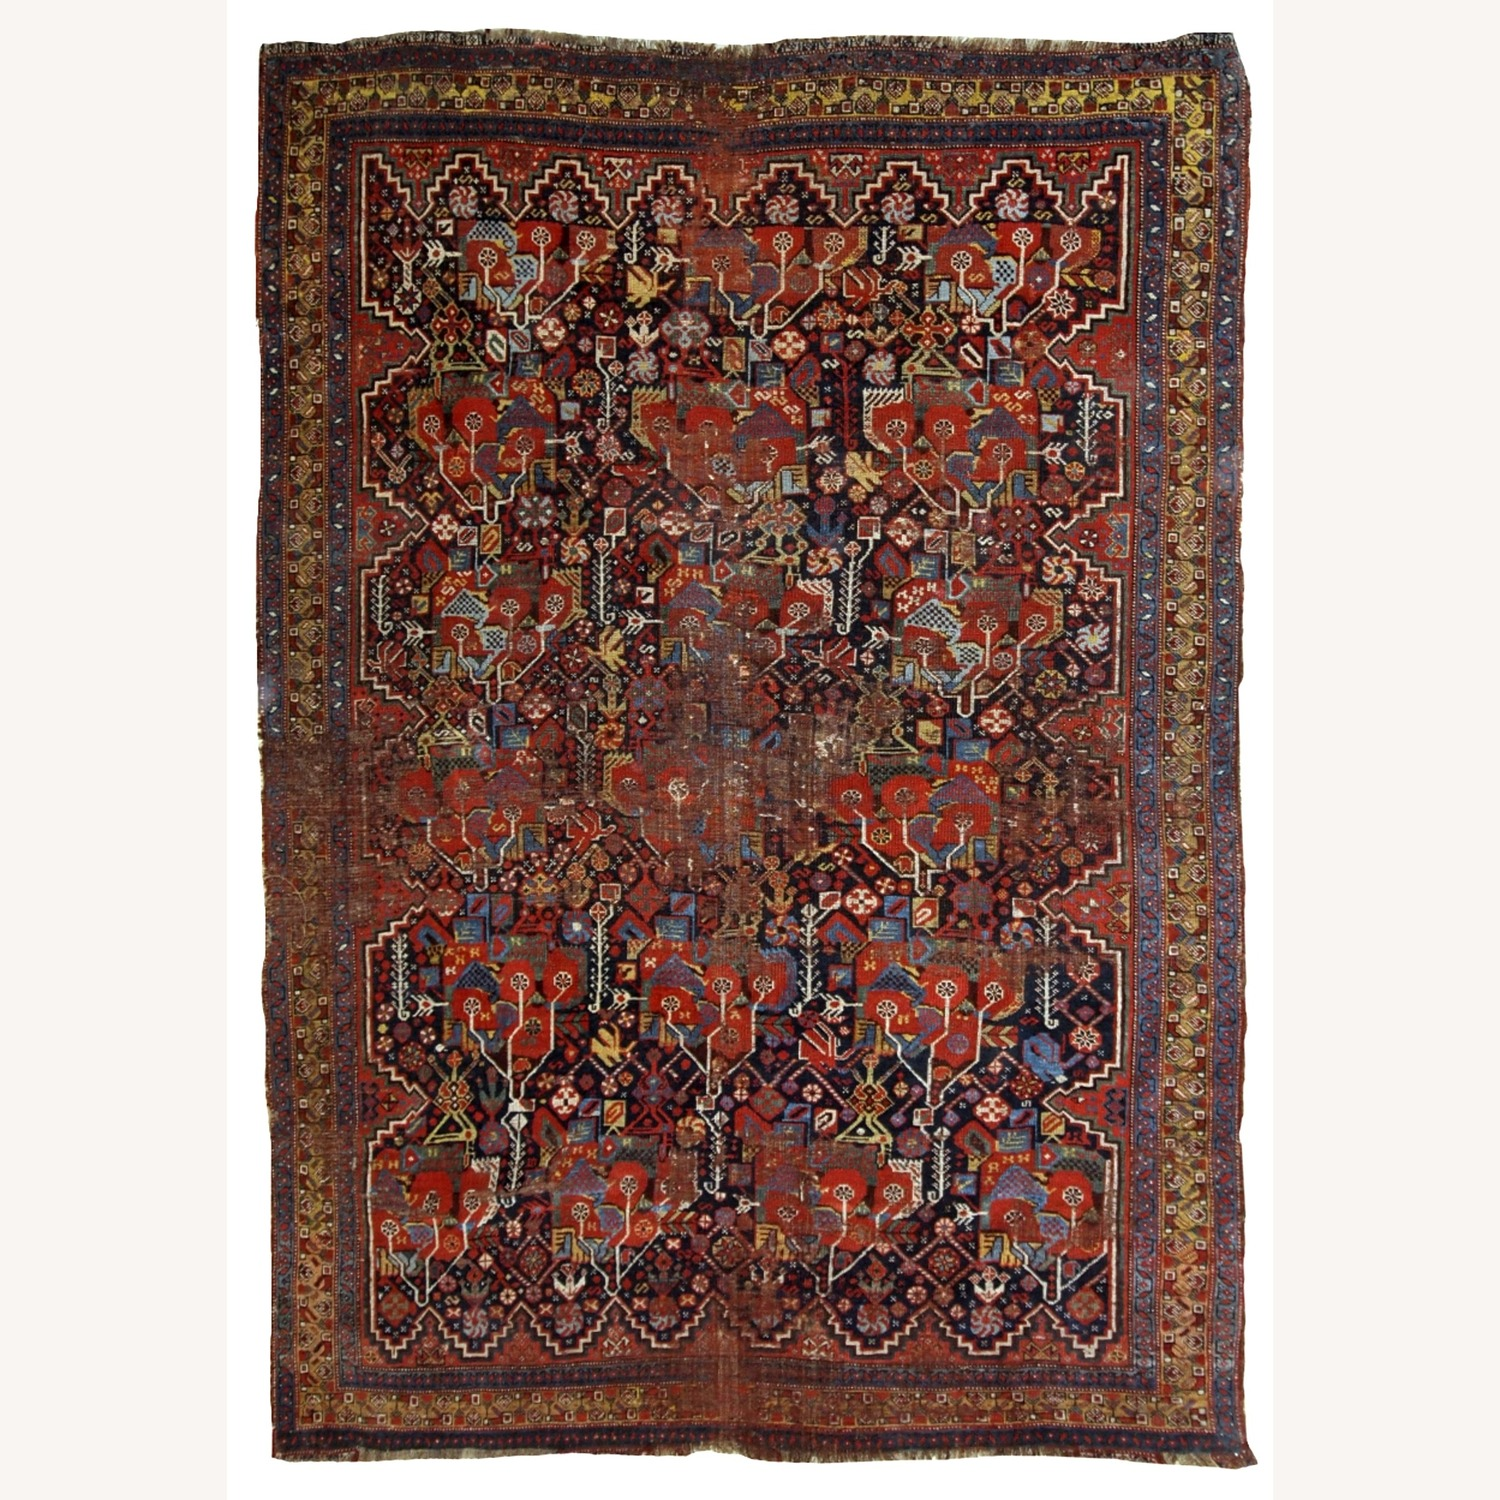 Handmade Antique Collectible Persian Khamseh Rug - image-1